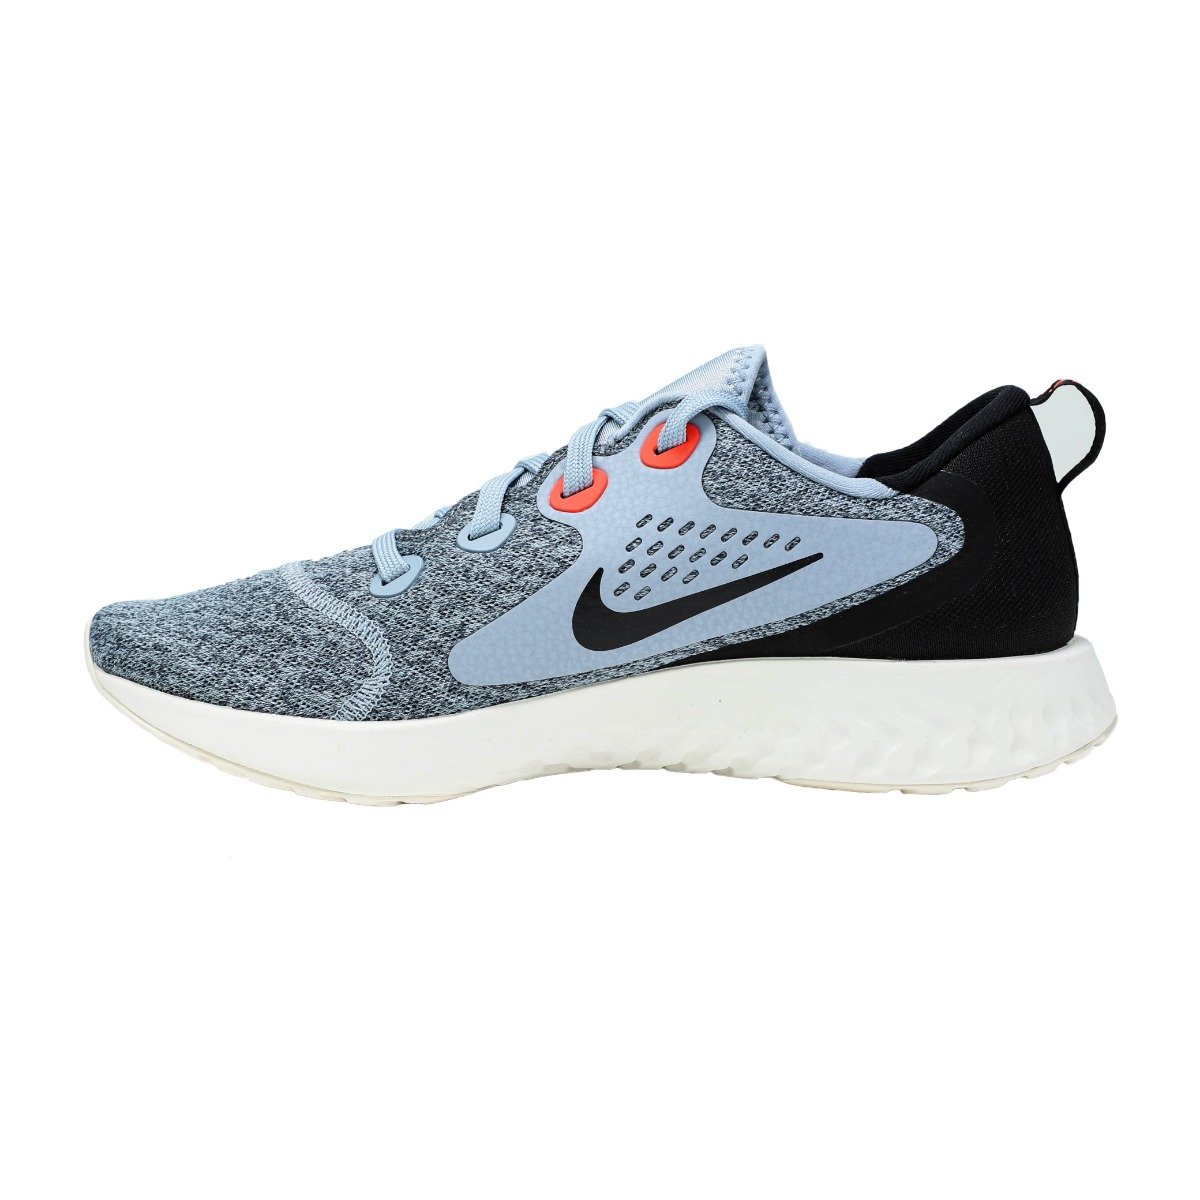 Nike-Men-039-s-Legend-React-Running-Shoes thumbnail 16